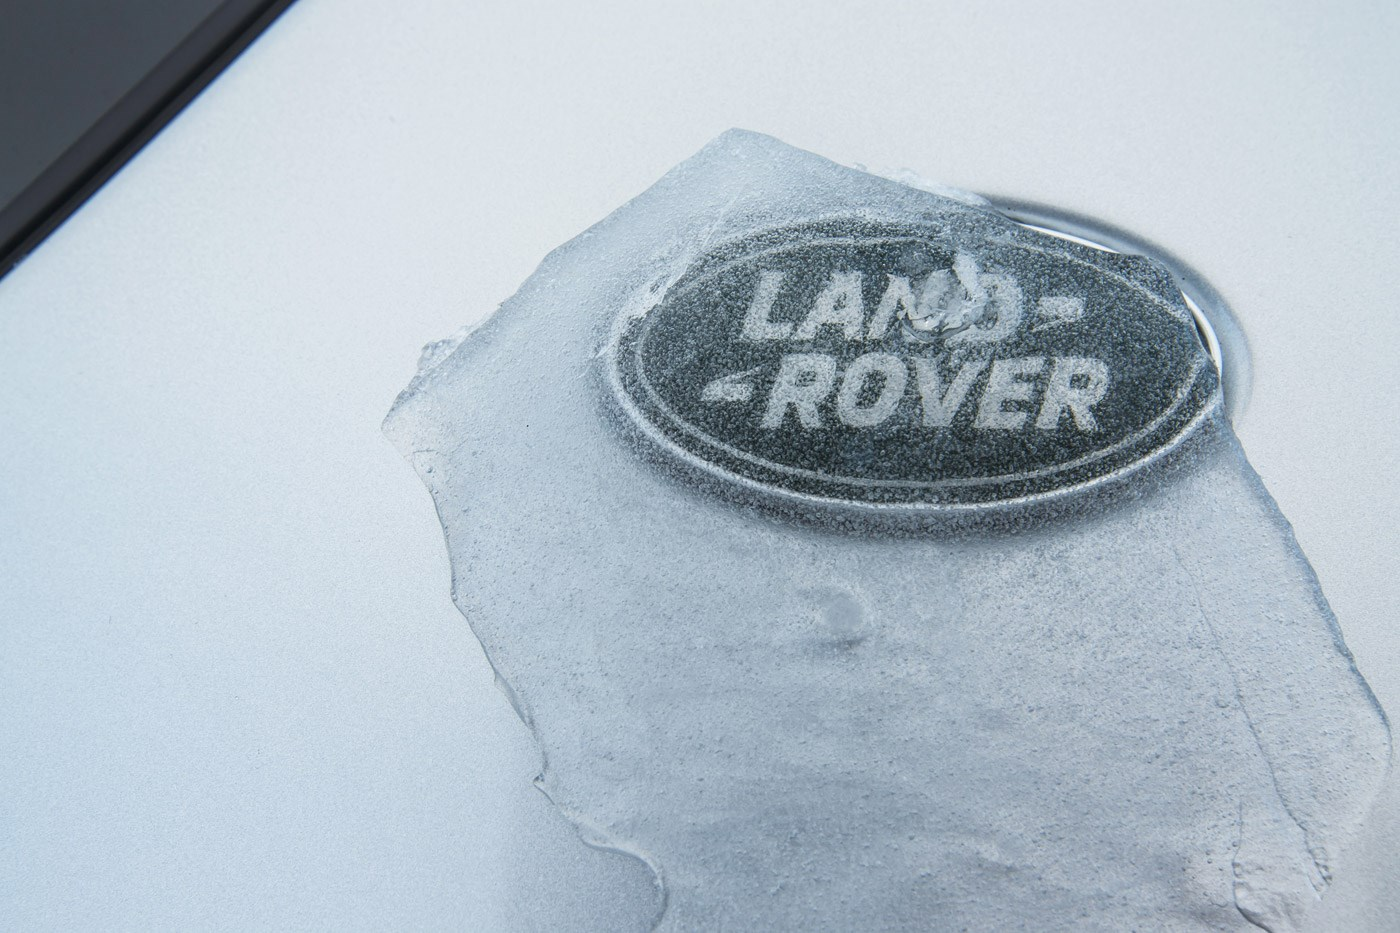 Icy Land Rover badge